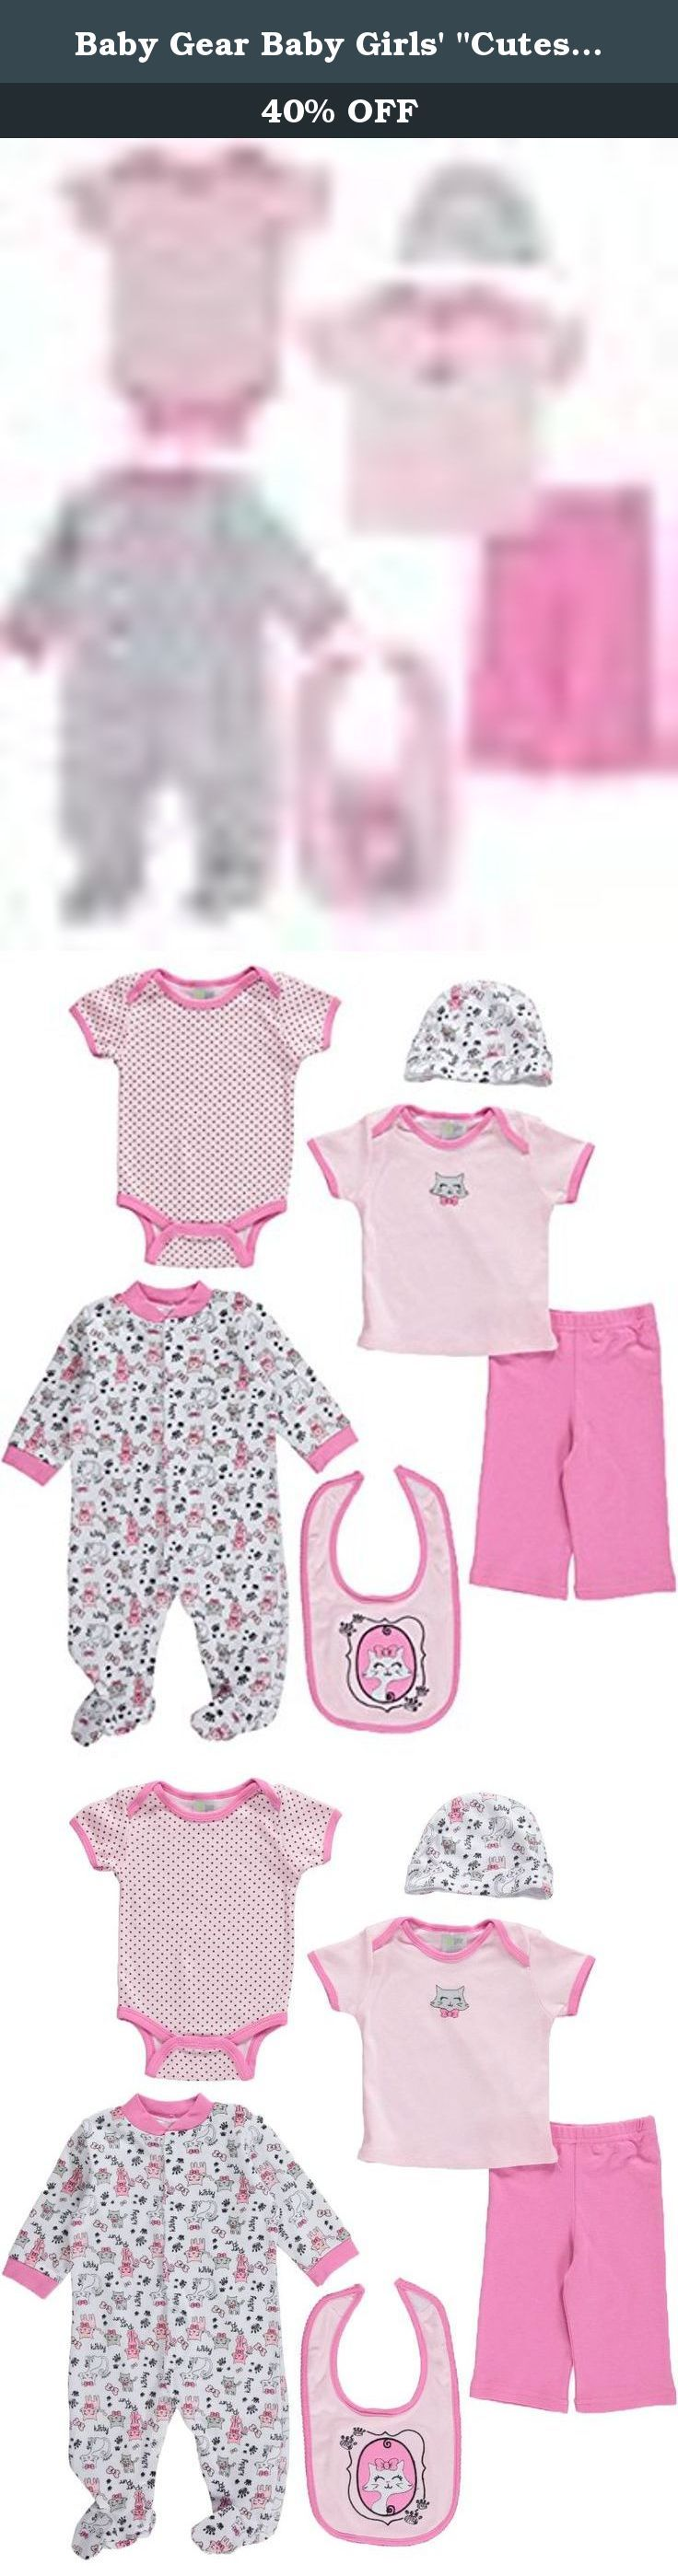 "Baby Gear Baby Girls' ""Cutest Kitty"" 6-Piece Layette Set - pink, 0 - 3 months. Stock up on soft and comfy 100% cotton clothing with this essential 6-pack from Baby Gear. Includes: Bodysuit (100% Cotton) Coverall (100% Cotton) Pants (100% Cotton) T-Shirt (100% Cotton) Bib (100% Cotton) Cap (100% Cotton) Machine Wash Cold Imported."